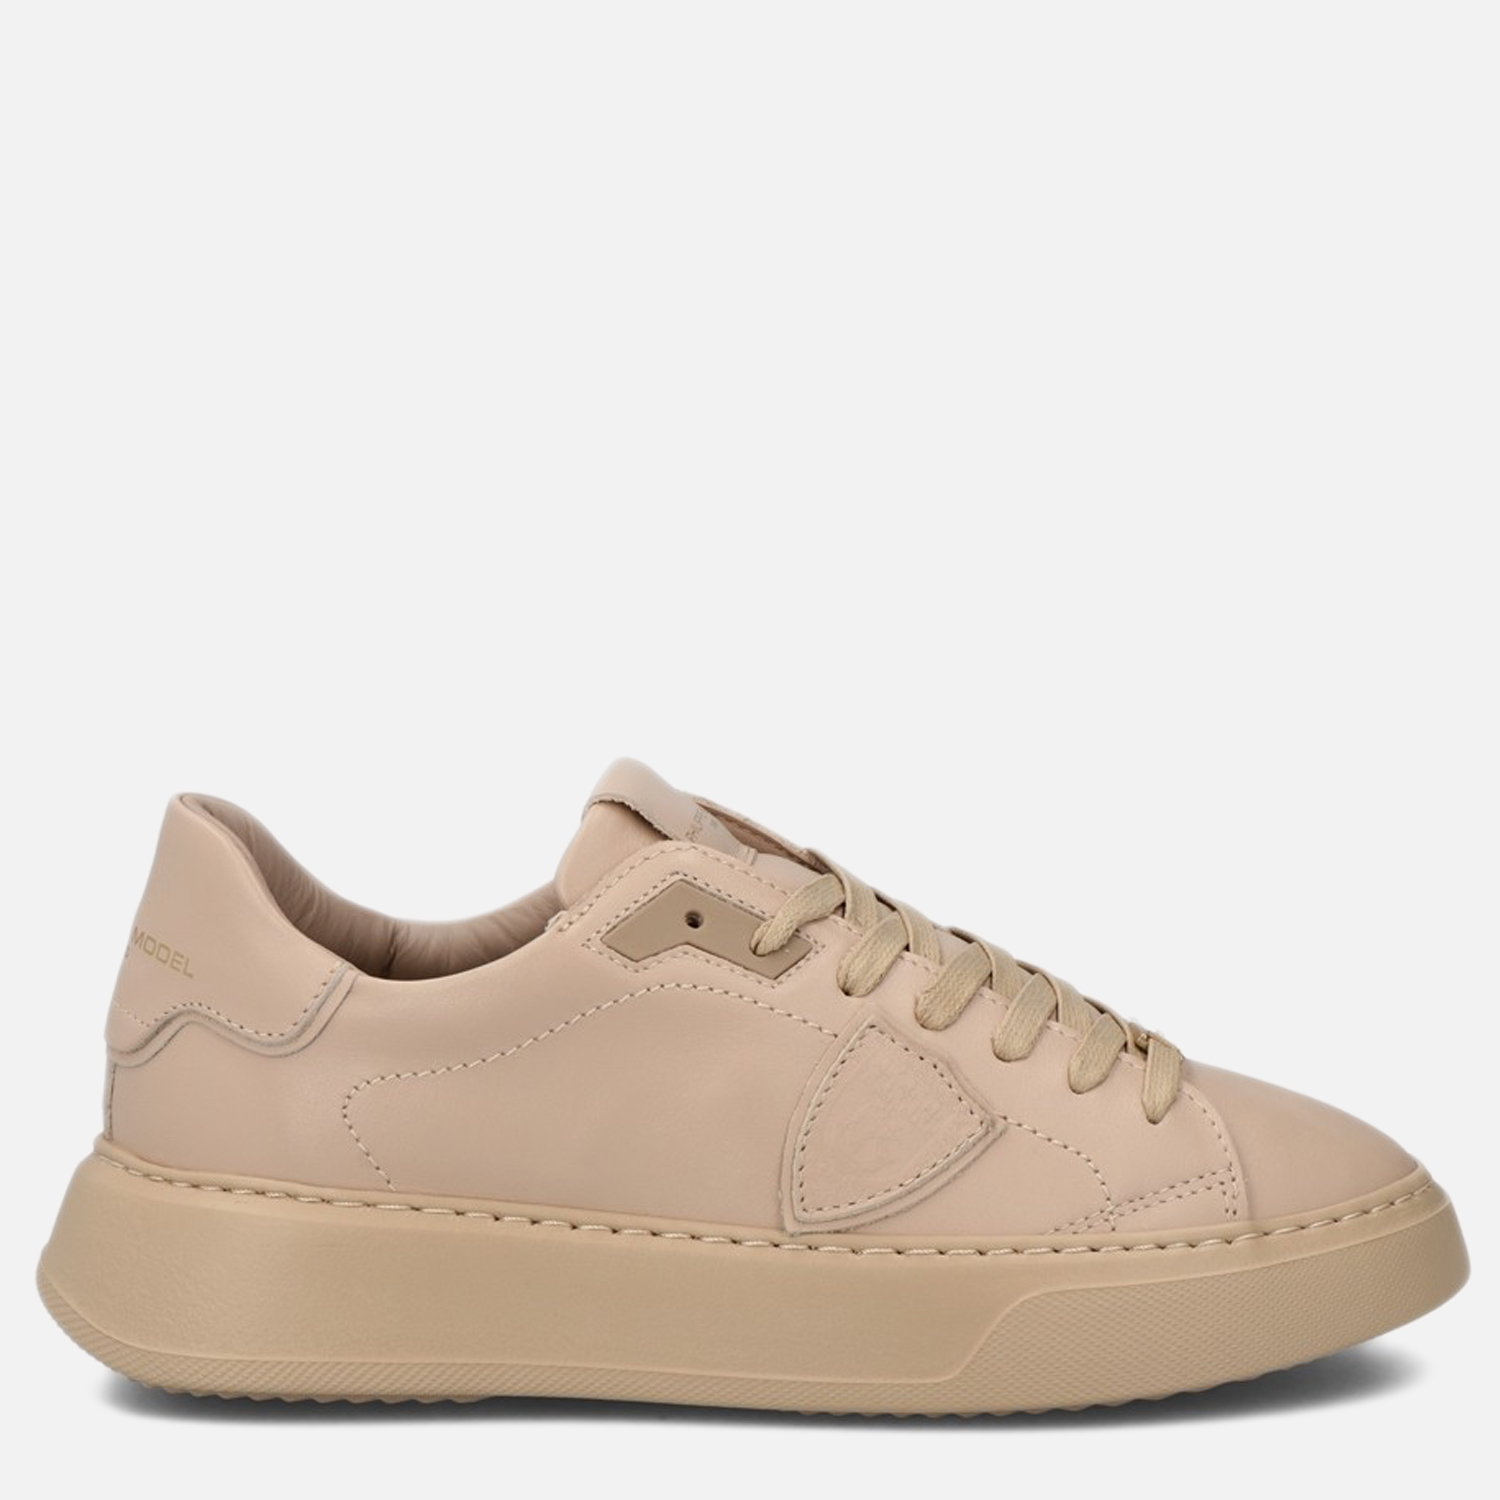 Philippe Model Leathers SNEAKERS TEMPLE MONOCHROME LOW